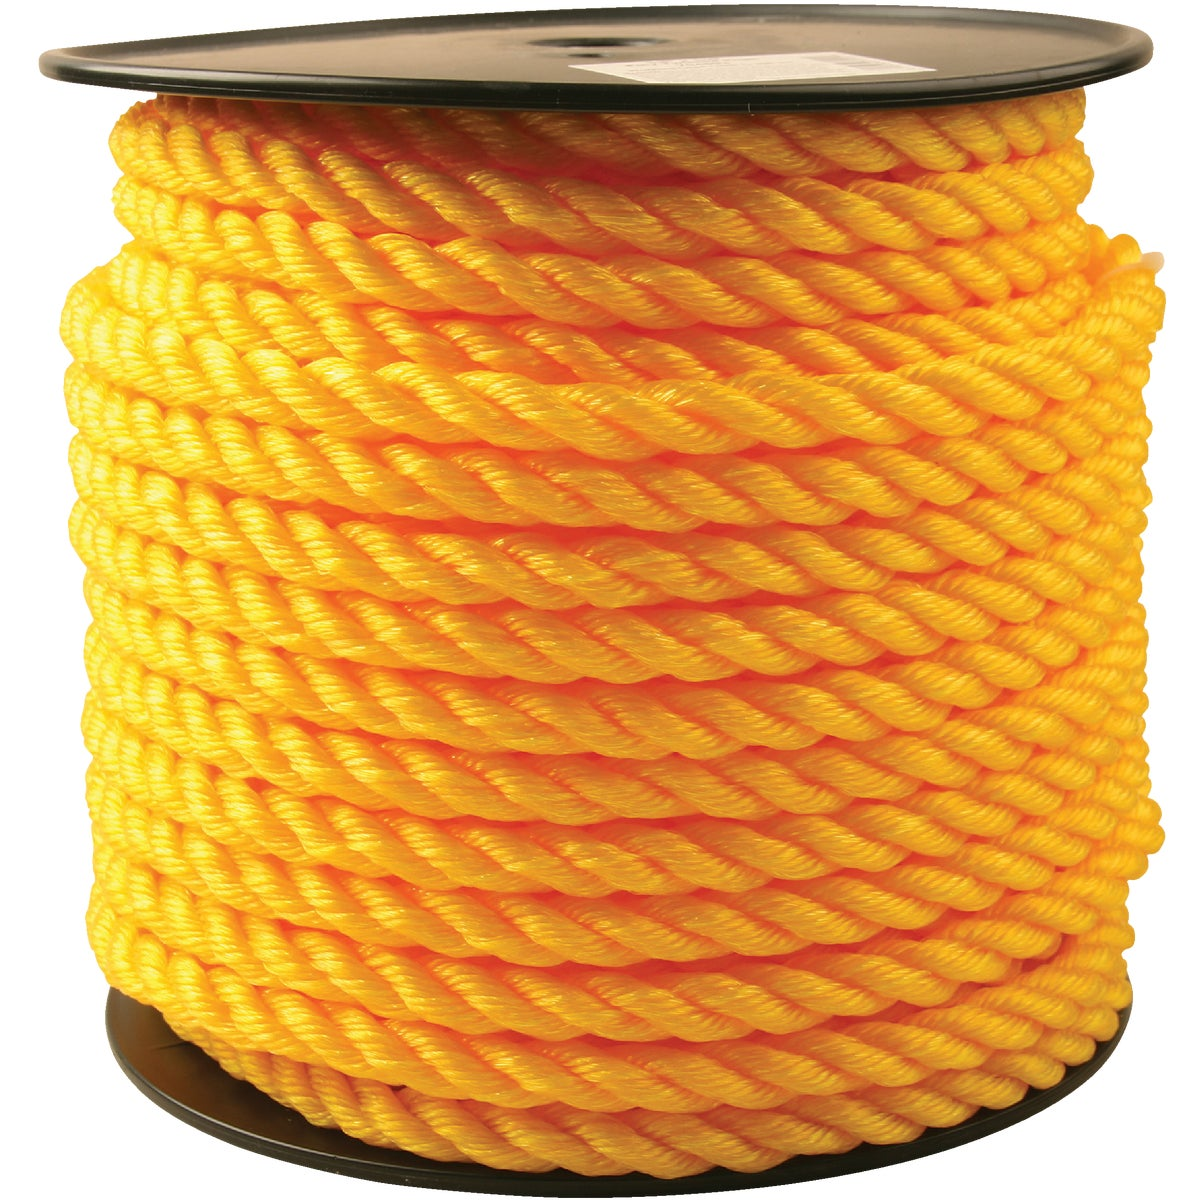 "5/8""X150' POLY TWST ROPE - 704893 by Do it Best"